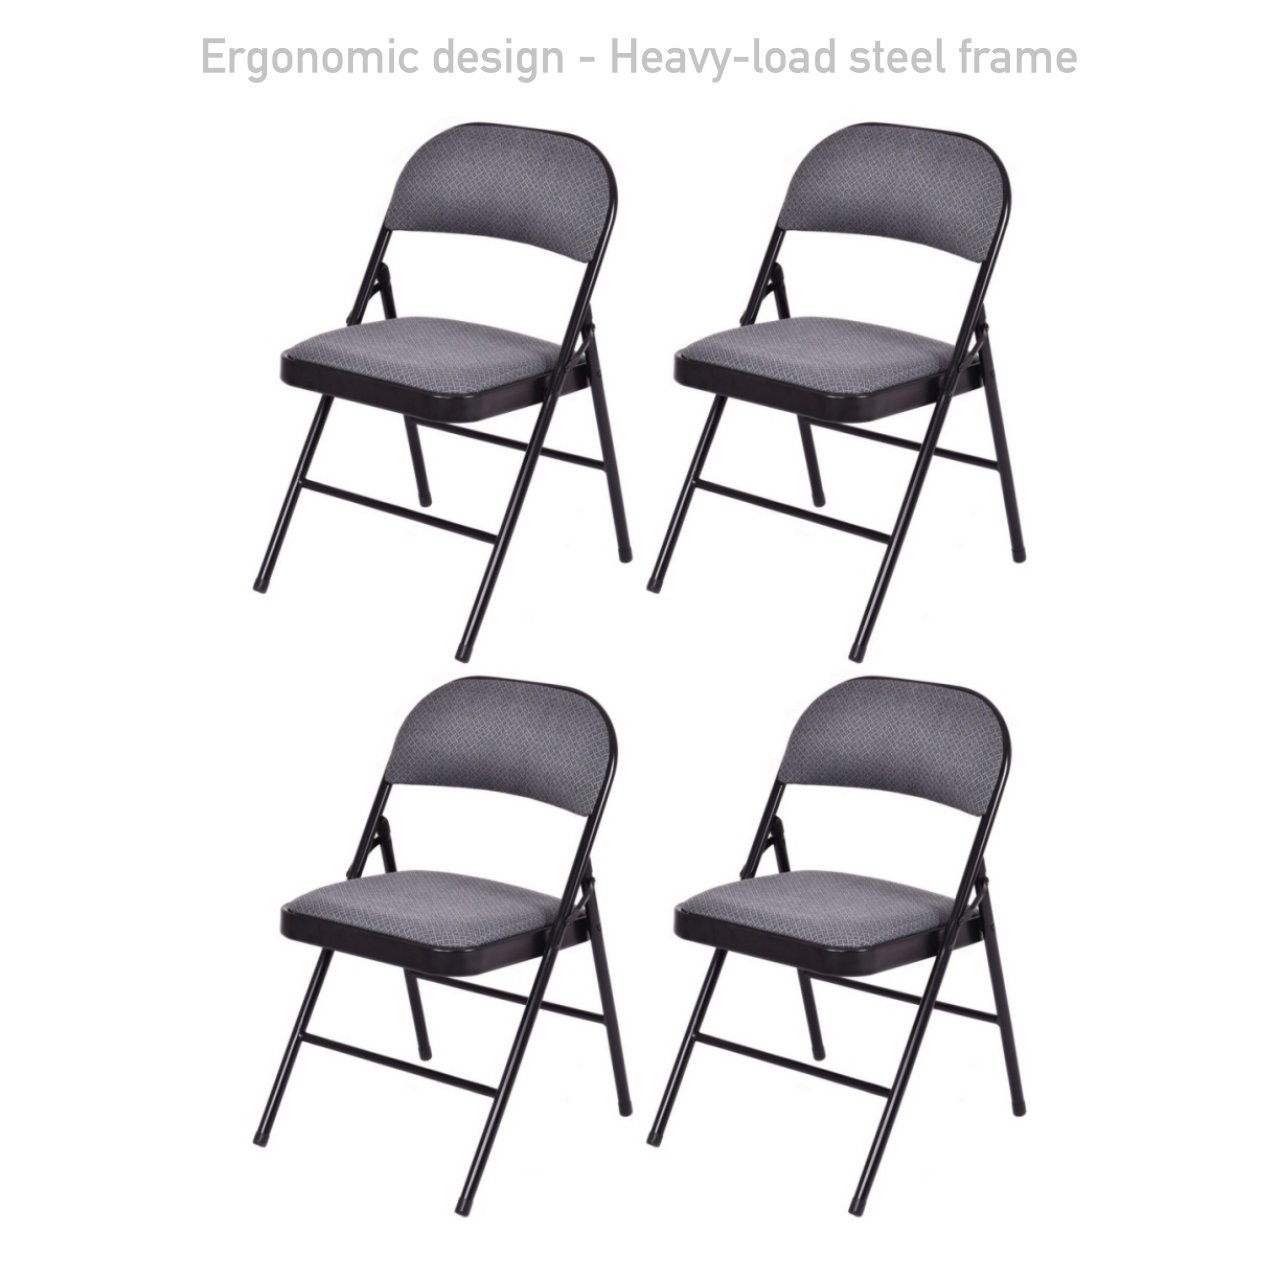 Portable Commercial Folding Chair Wedding Party Holidays Event Seat Durable Heavy-load Steel Frame Sponge-filled Fabric Seat Home Kitchen Office Furniture - Set of 4 Grey #1728